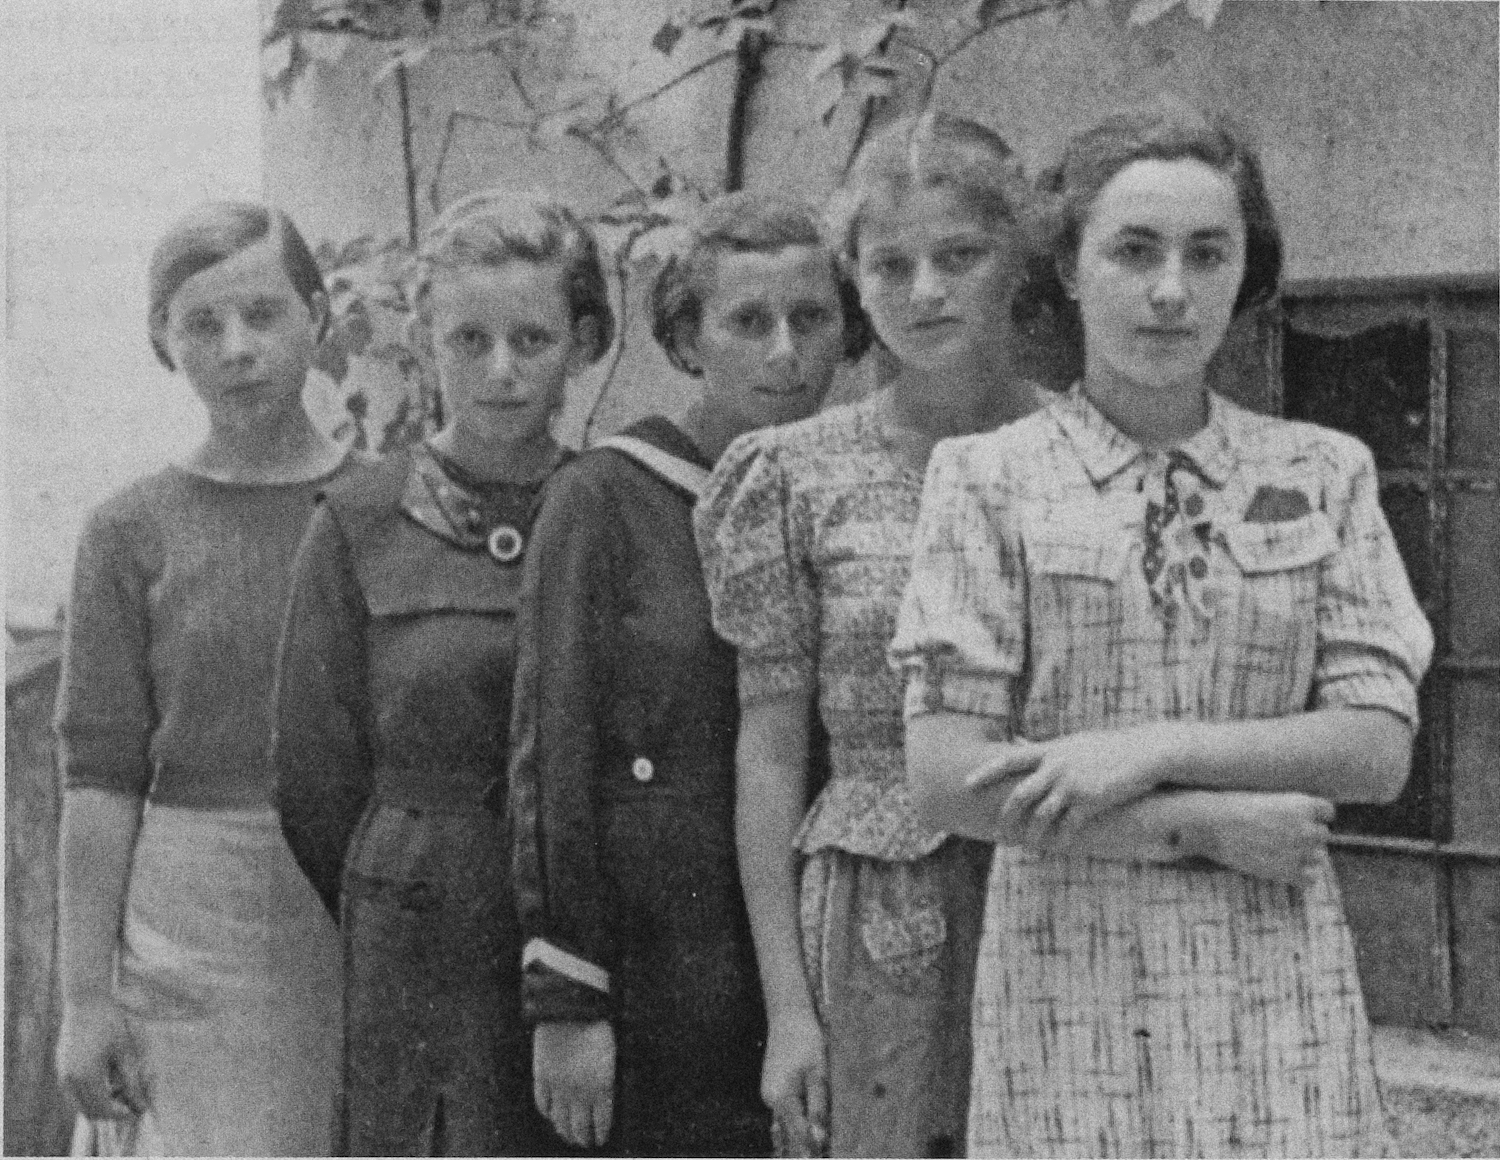 A group of teenage girls from the town of Humenné, Slovakia, c. 1936. From left to right: an unidentified girl, Anna Herskovicova, another unidentified girl, Lea Friedman and Debora Gross (sister of Adela Gross). Adela Gross and Lea Friedman were two of the 999 unmarried Jewish women and girls on the first official transport of Jews to Auschwitz.